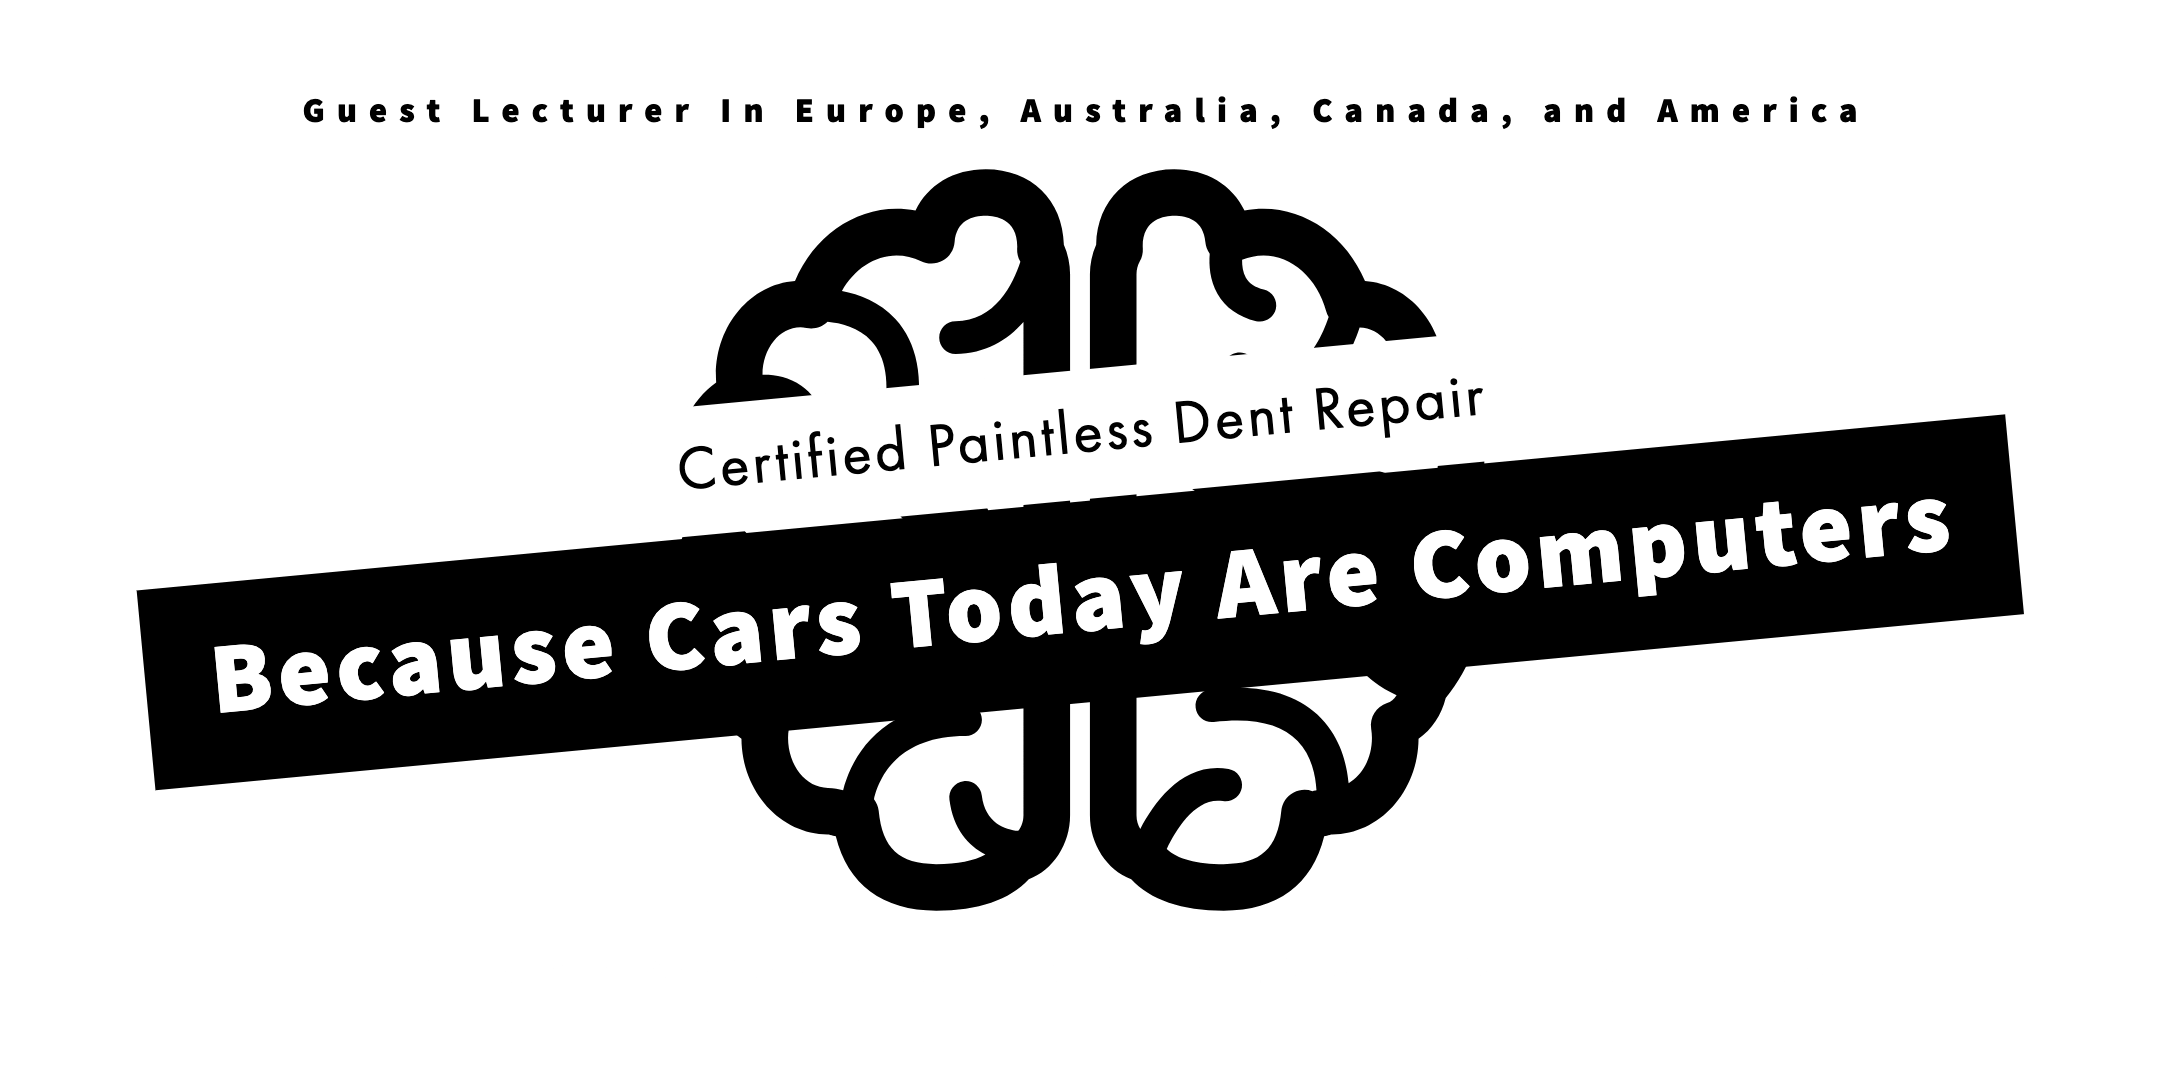 Vehicles are more like rolling computers and need to be treated with great care. We are certified in Paintless Dent Repair Serving Central Florida